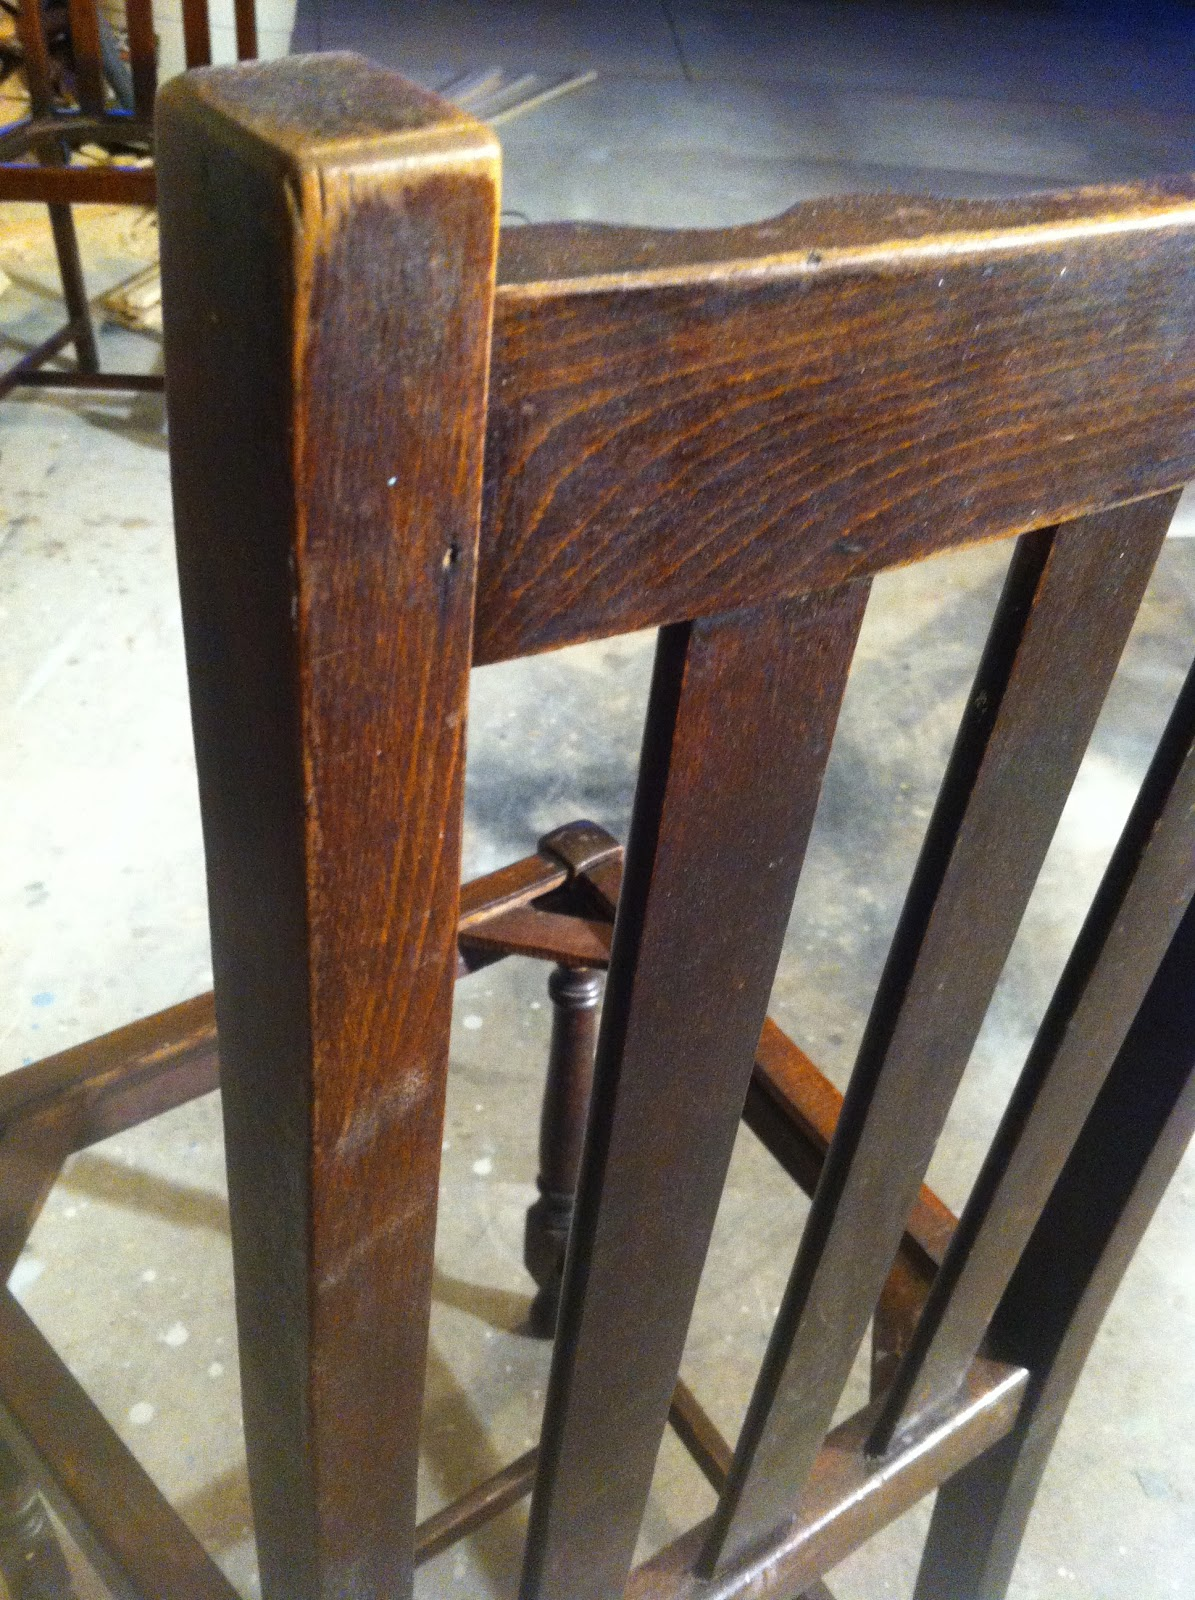 Stripping Old Wax Off Furniture